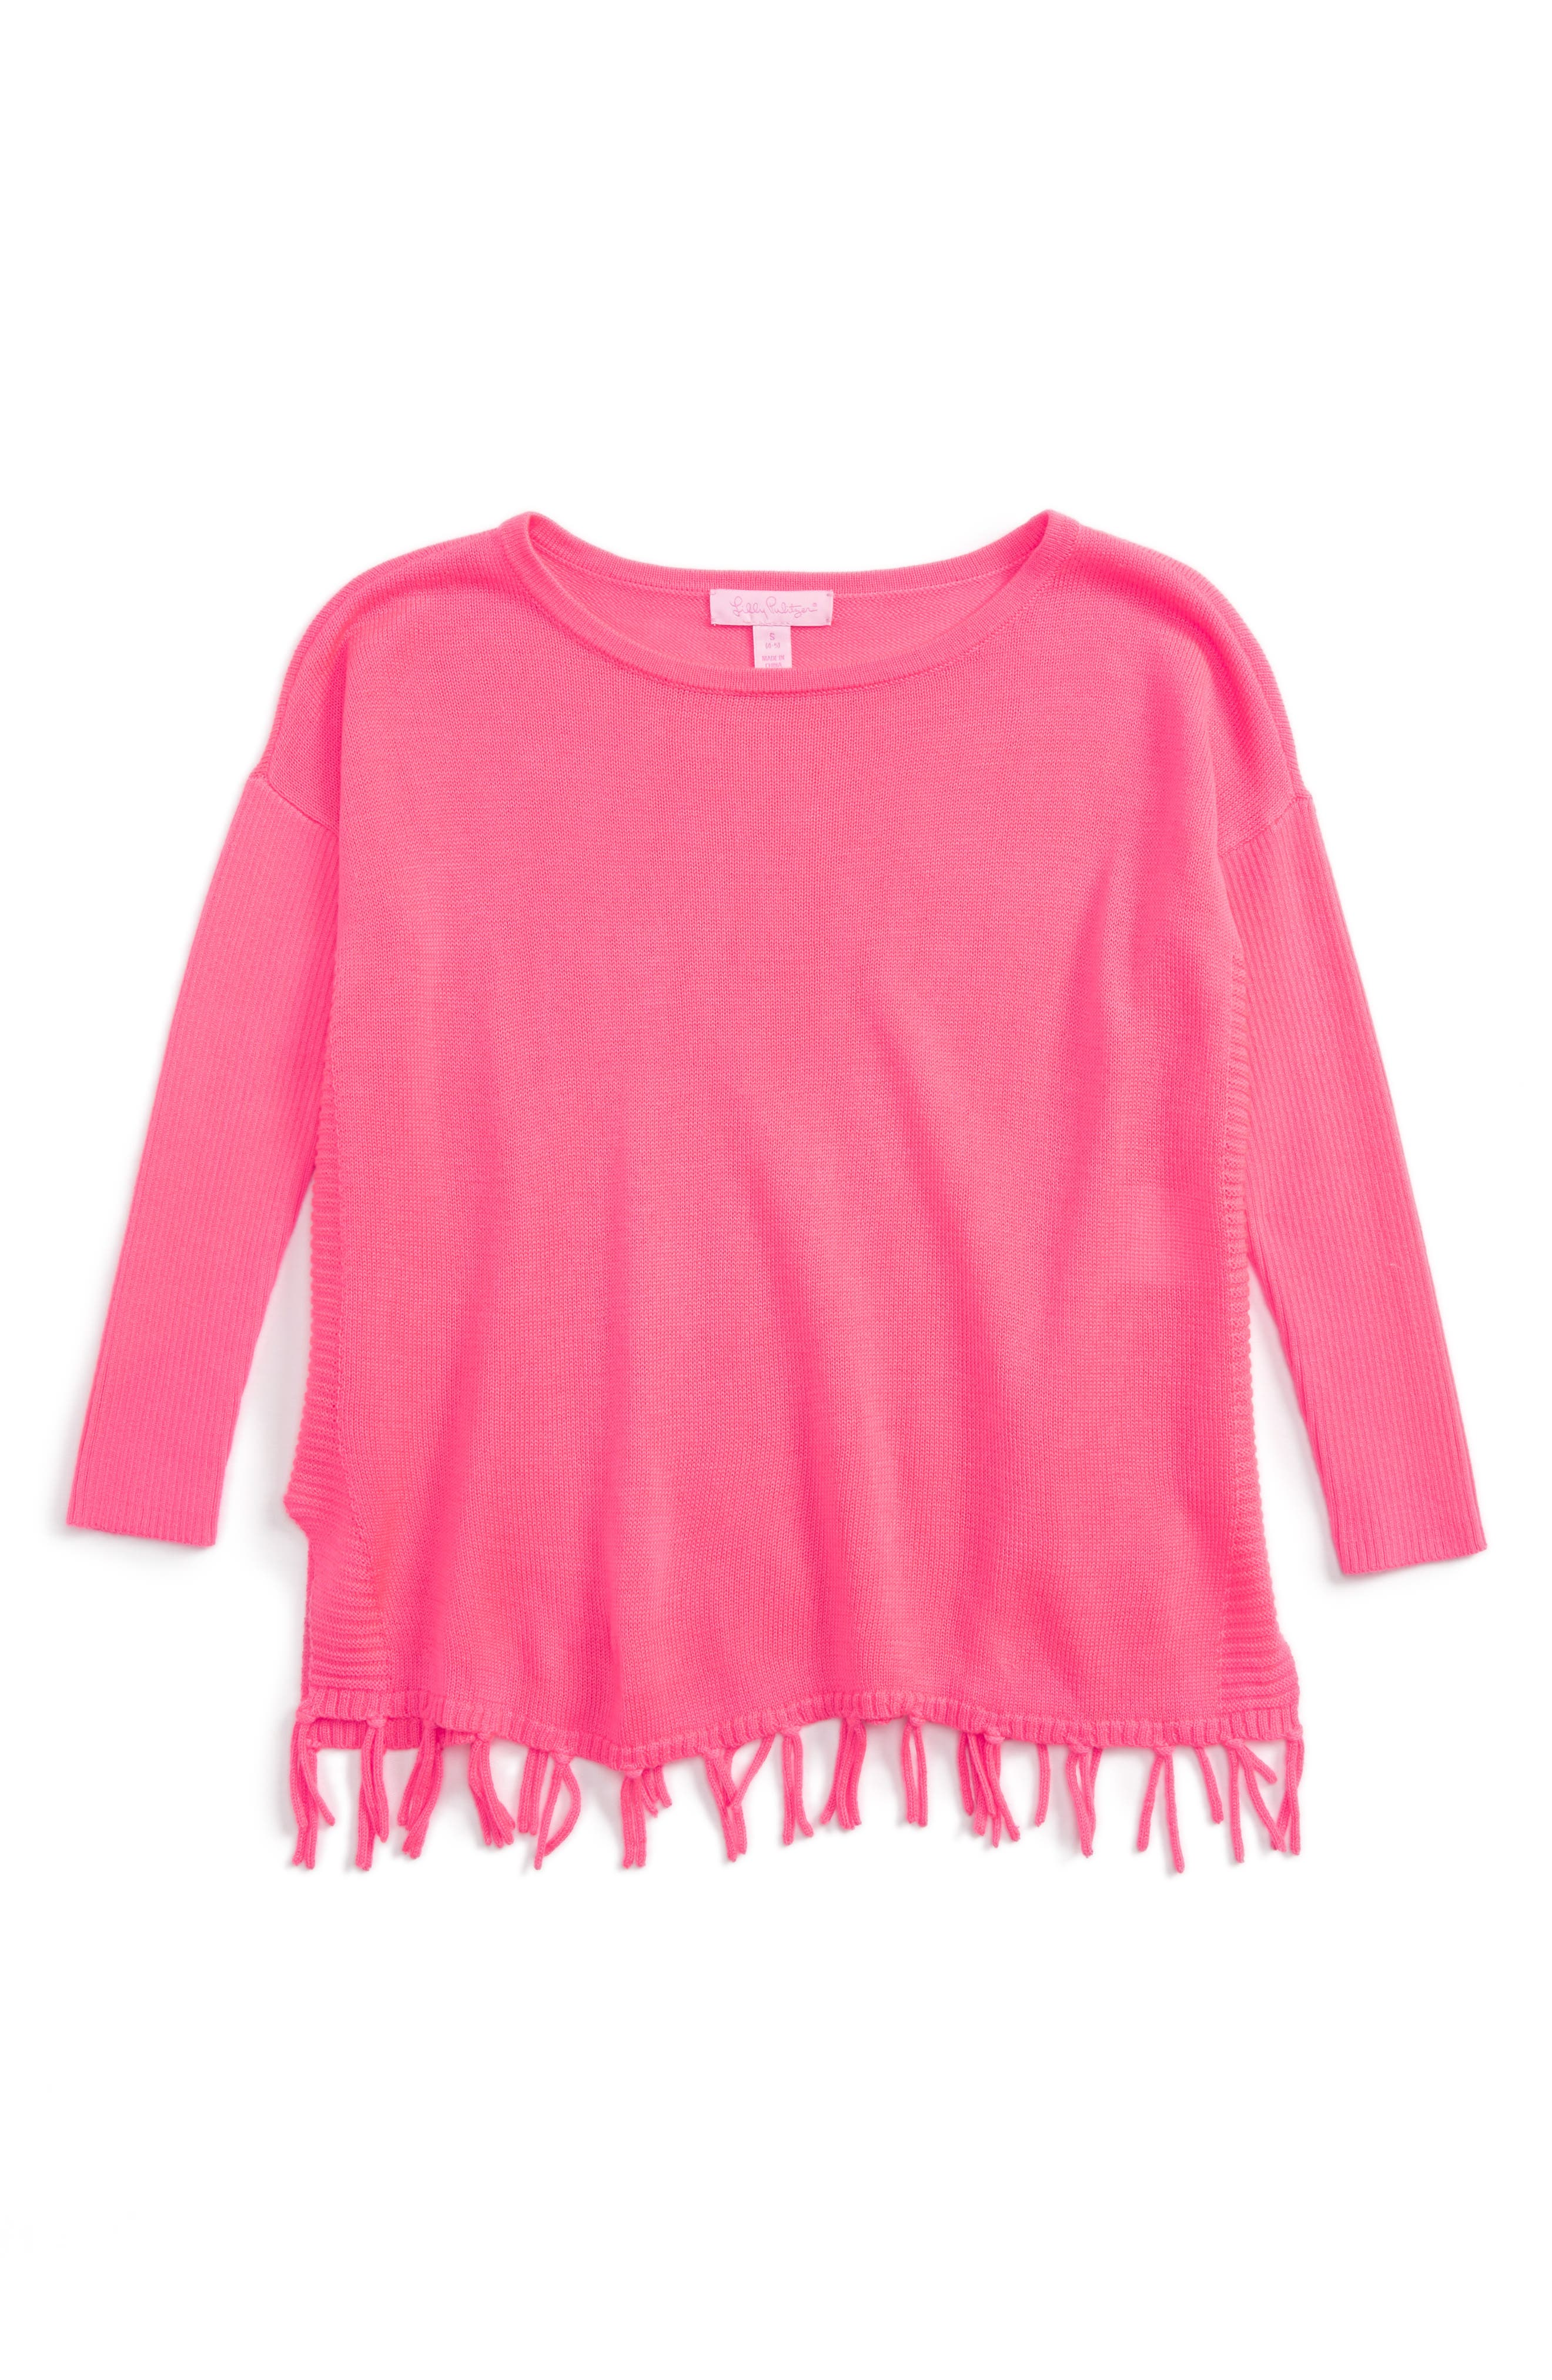 Lilly Pulizter<sup>®</sup> Mini Ramona Sweater,                             Main thumbnail 1, color,                             Colony Coral